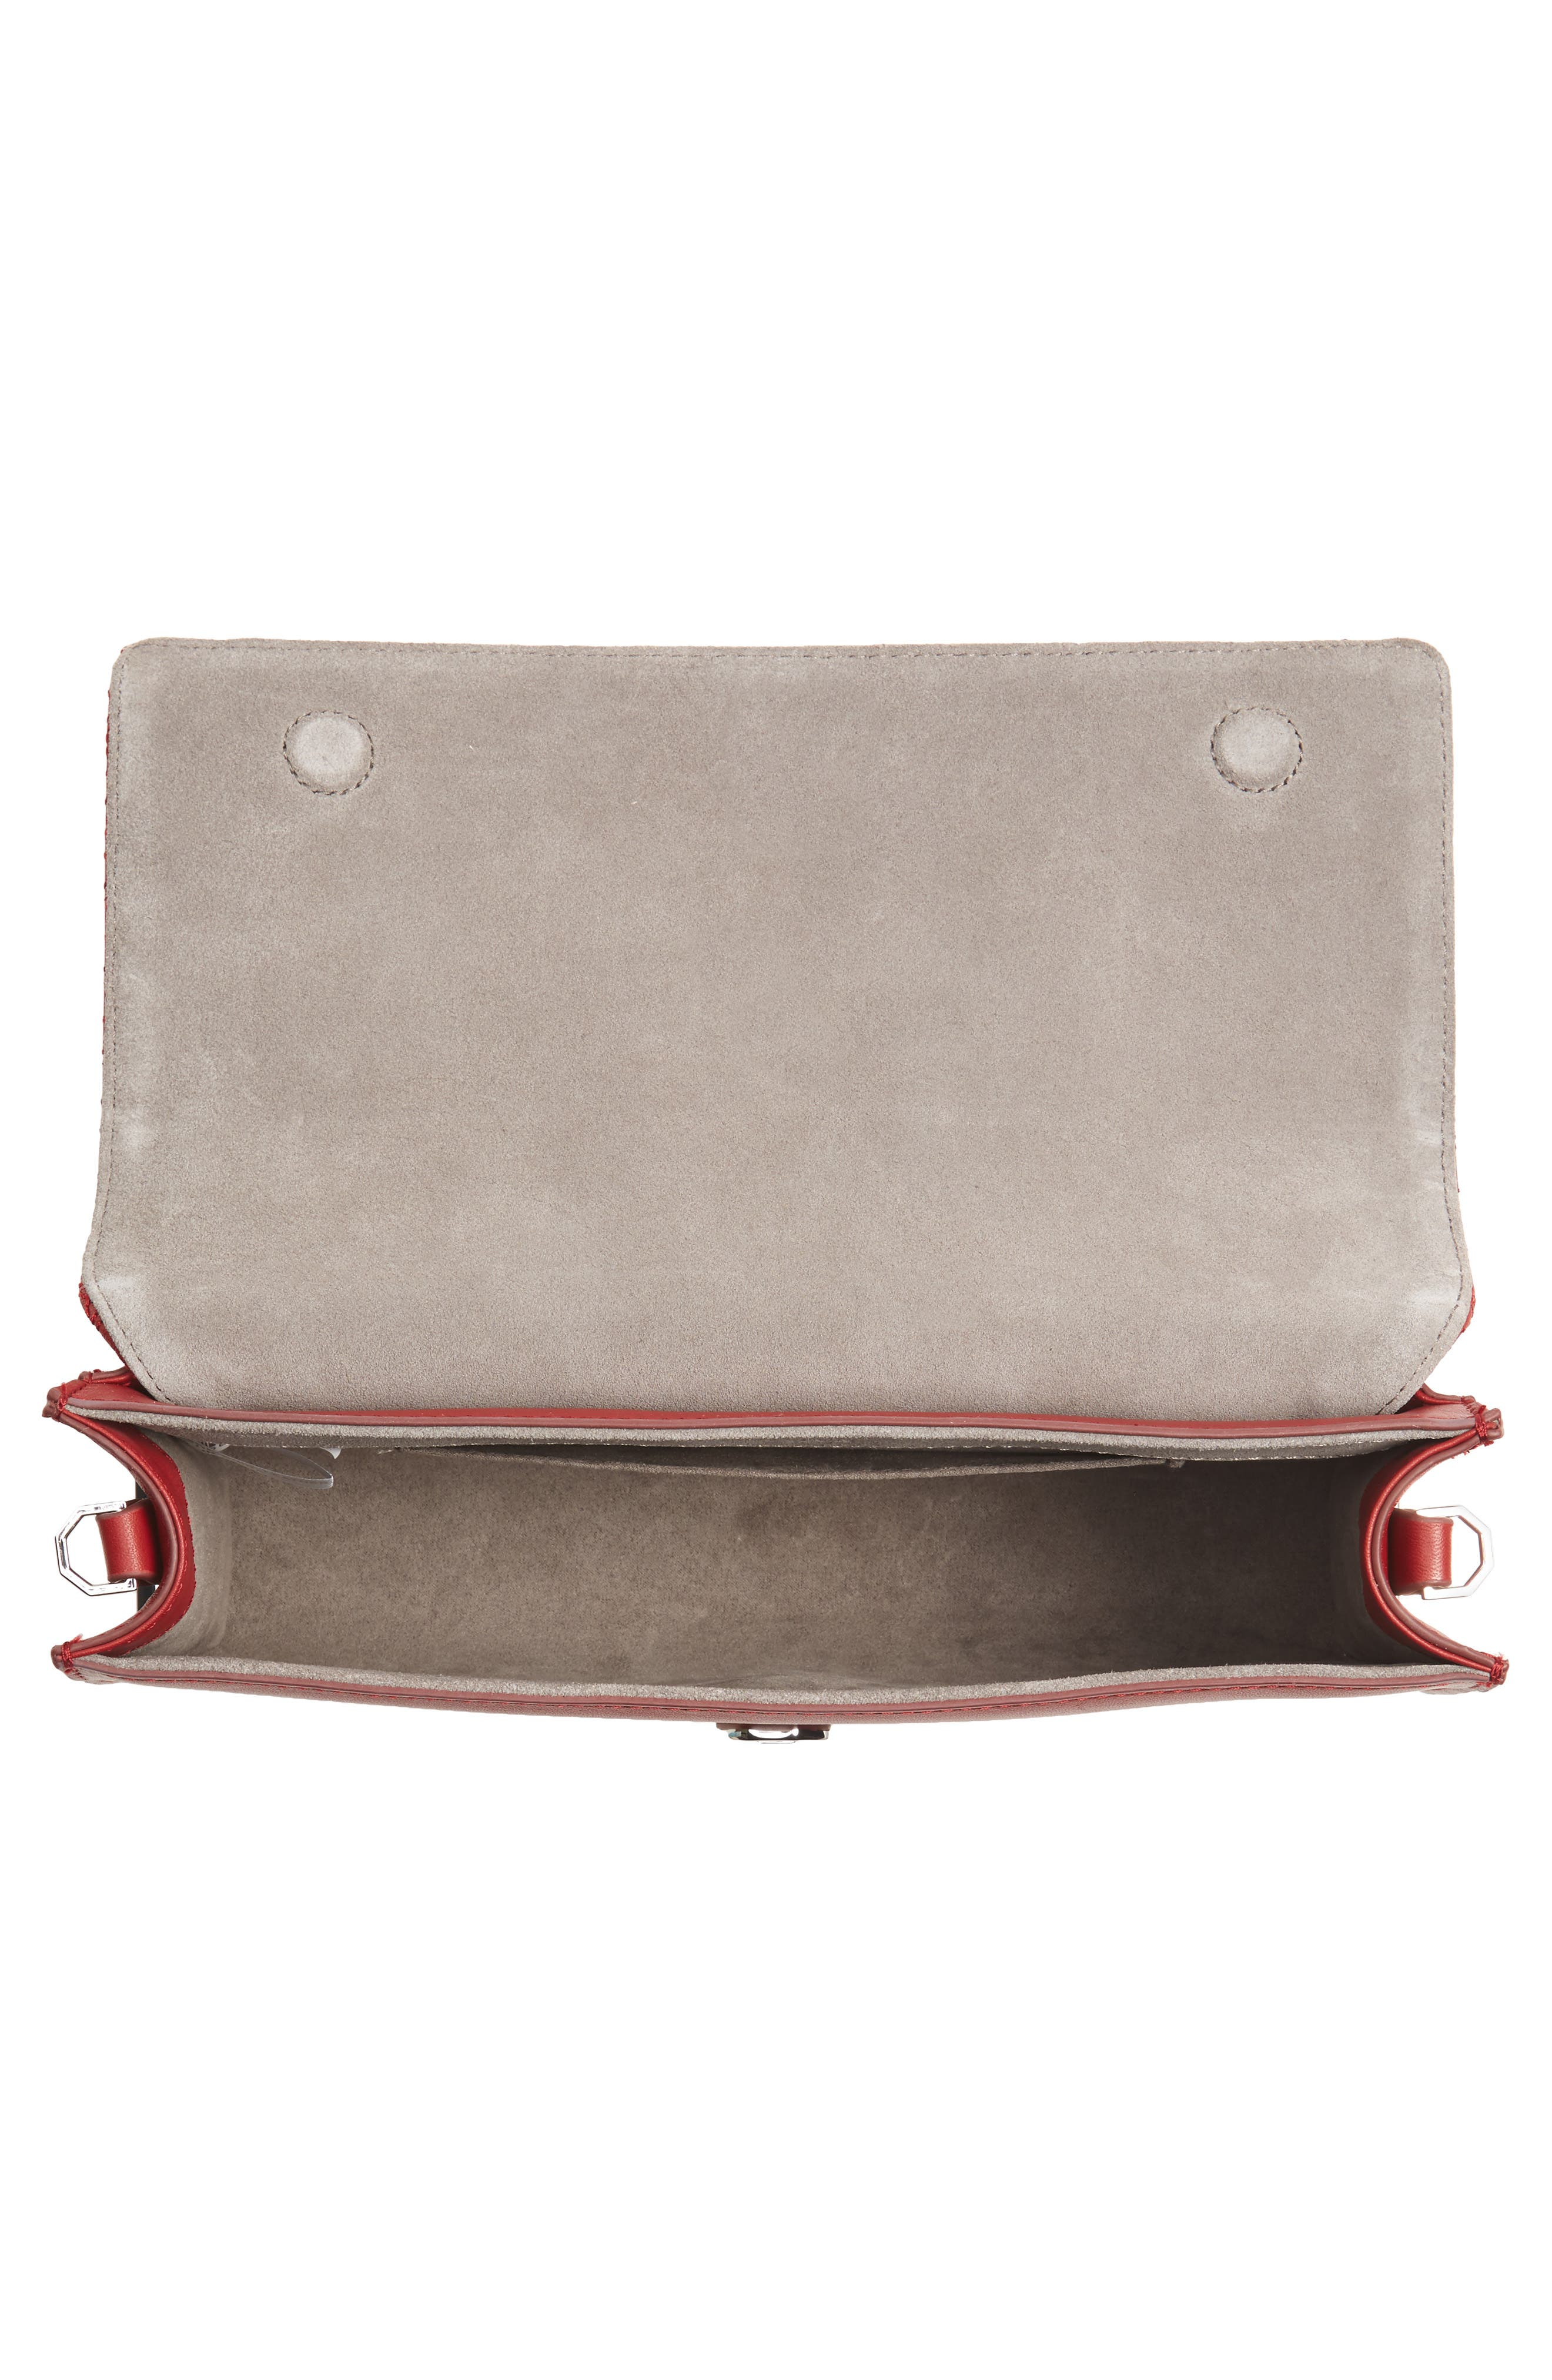 'Yvet' Leather Flap Clutch,                             Alternate thumbnail 4, color,                             Cherry Red